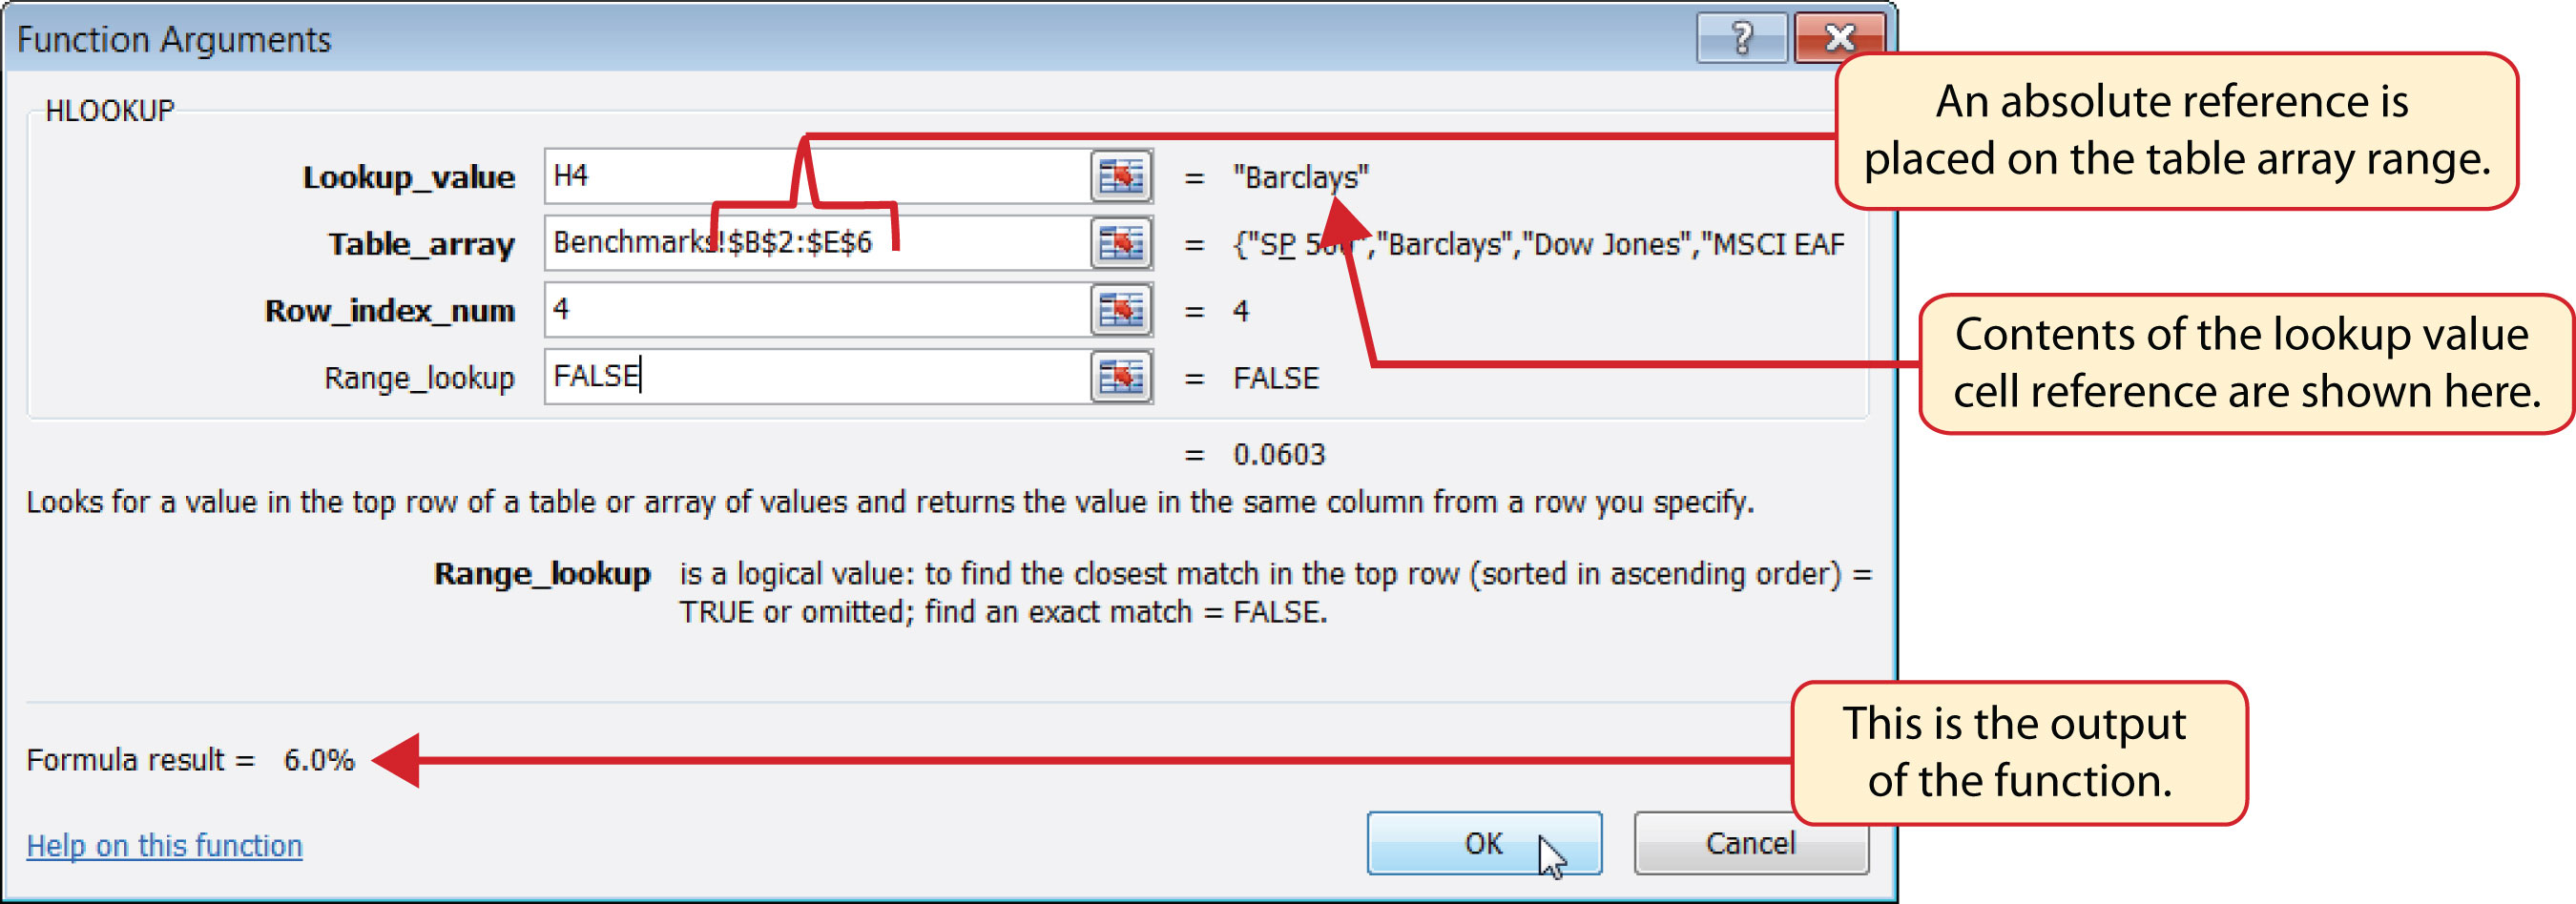 Figure 346pleted Function Arguments Dialog Box For The Hlookup Function